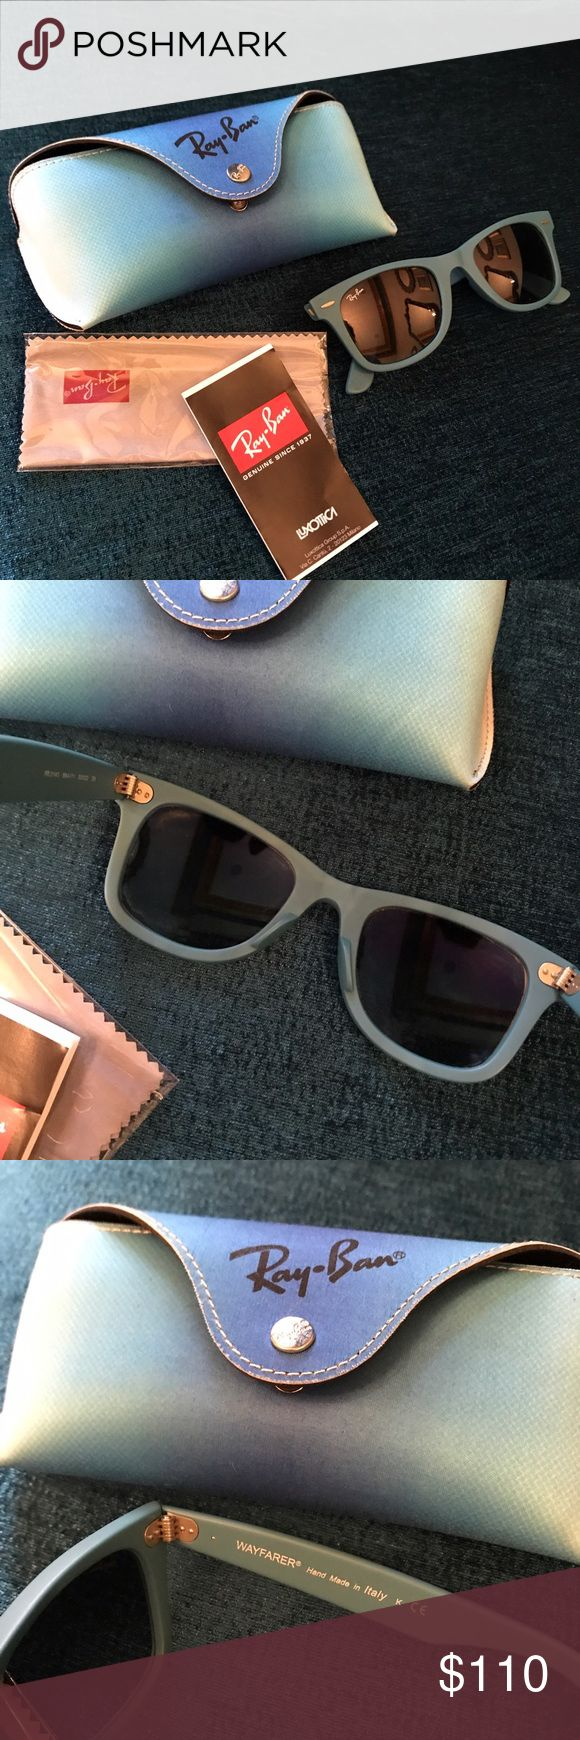 Rare Italian ray ban wayfarer sunglasses No flaws or scratches! Bought in Italy Ray-Ban Accessories Sunglasses